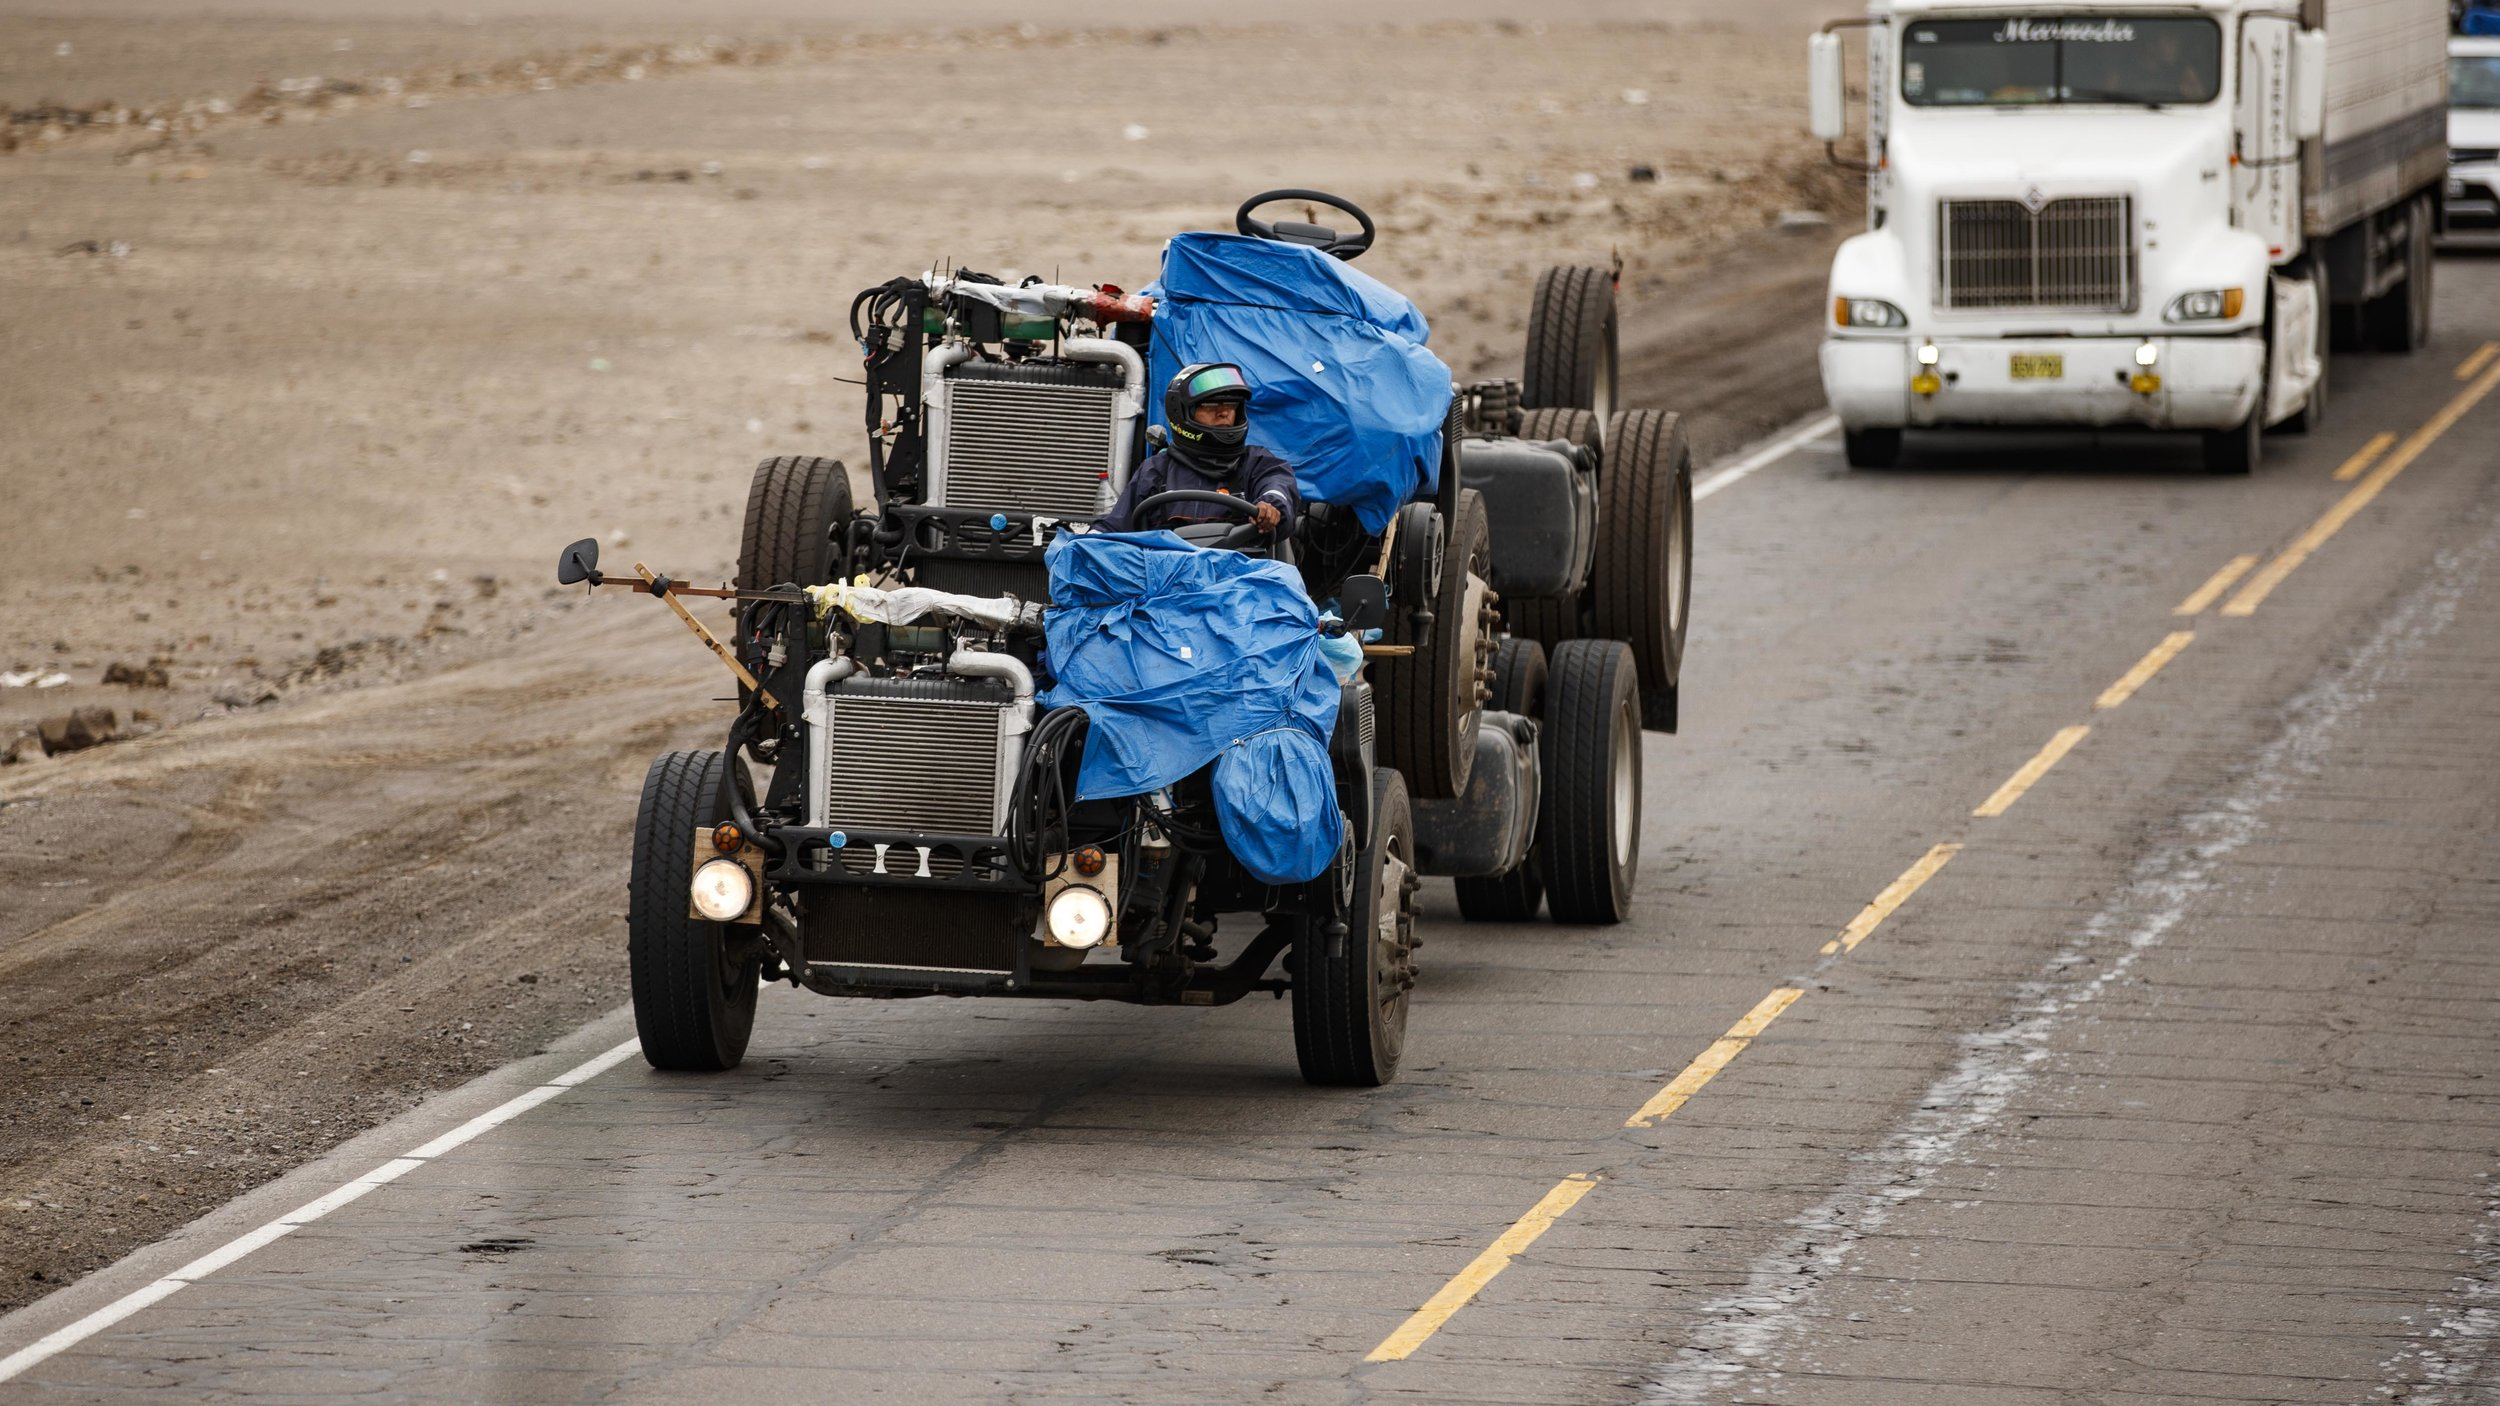 A RV chassis stacked on a RV chassis driven by a man wearing a helmet. This is one of about 6 we saw, wild.